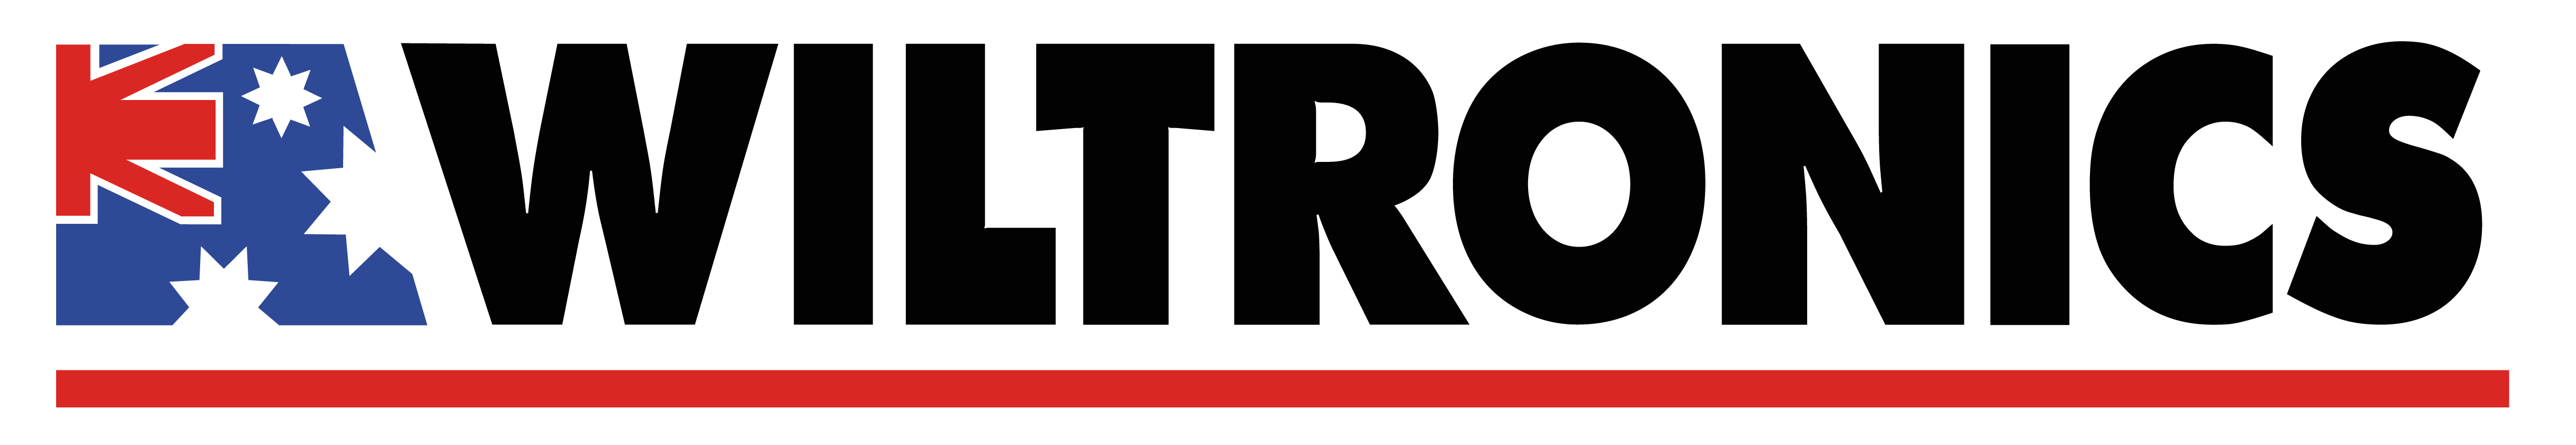 Wiltronics logo